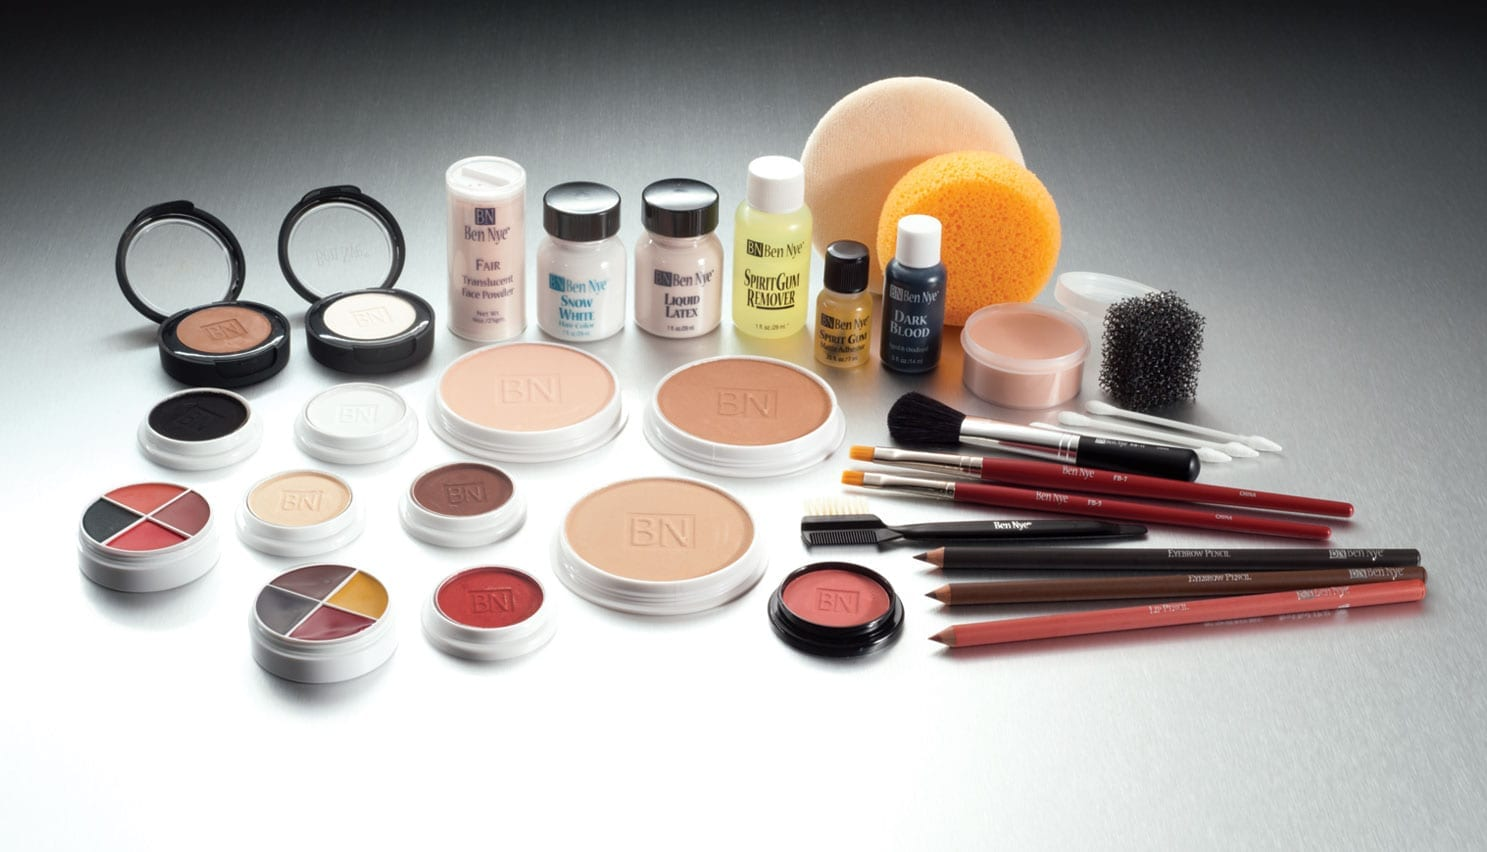 Ben Nye Professional Cake Makeup Kit